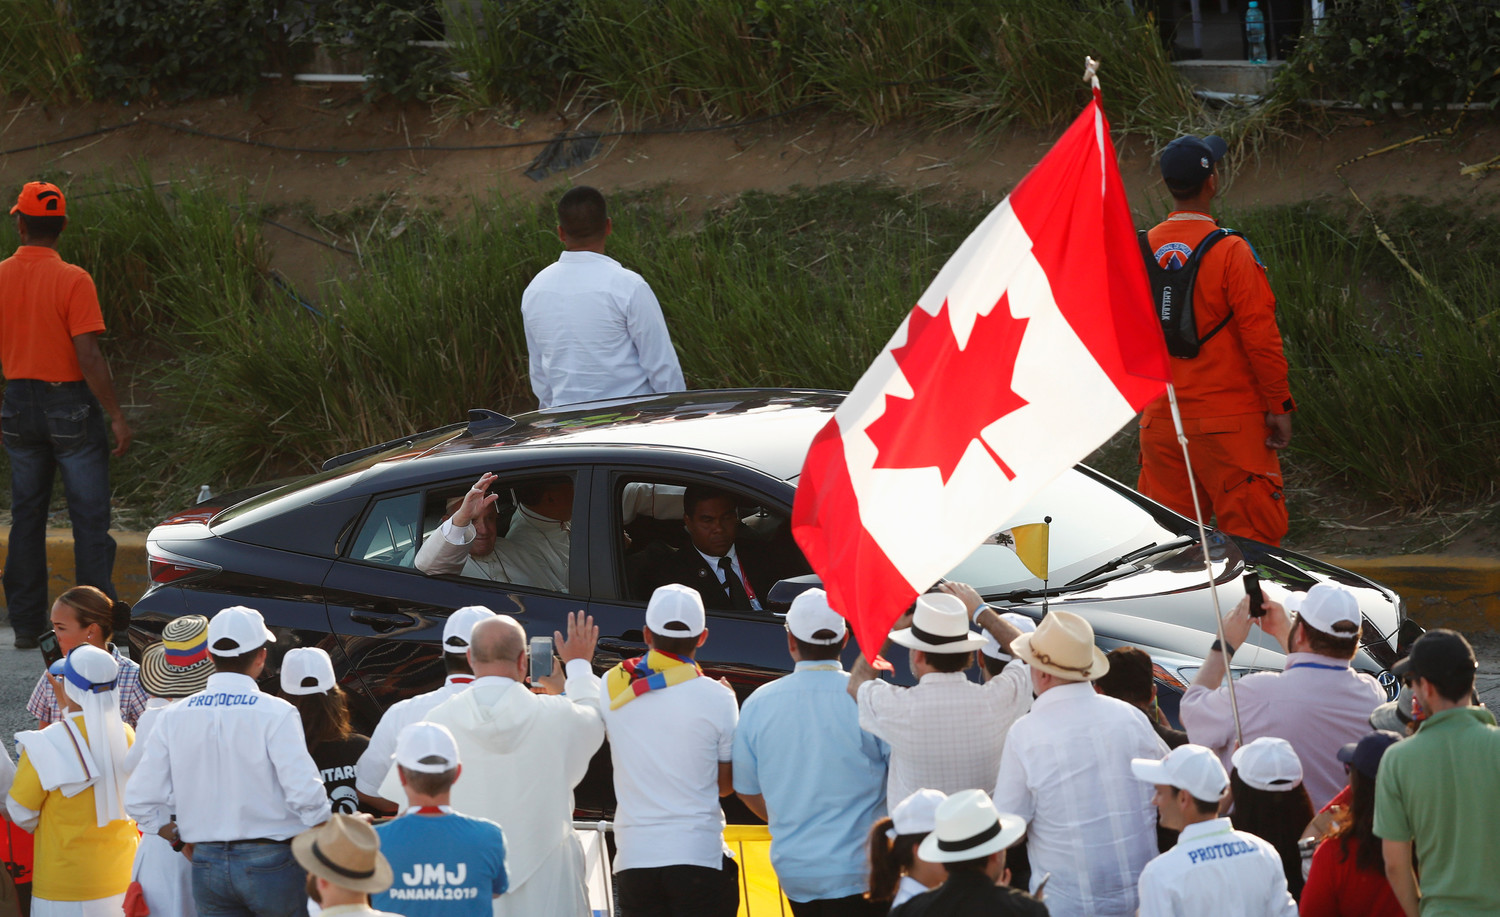 Pope Francis waves to World Youth Day pilgrims near a Canadian flag as he arrives to lead the Way of the Cross at Santa Maria la Antigua Field in Panama City Jan. 25, 2019.